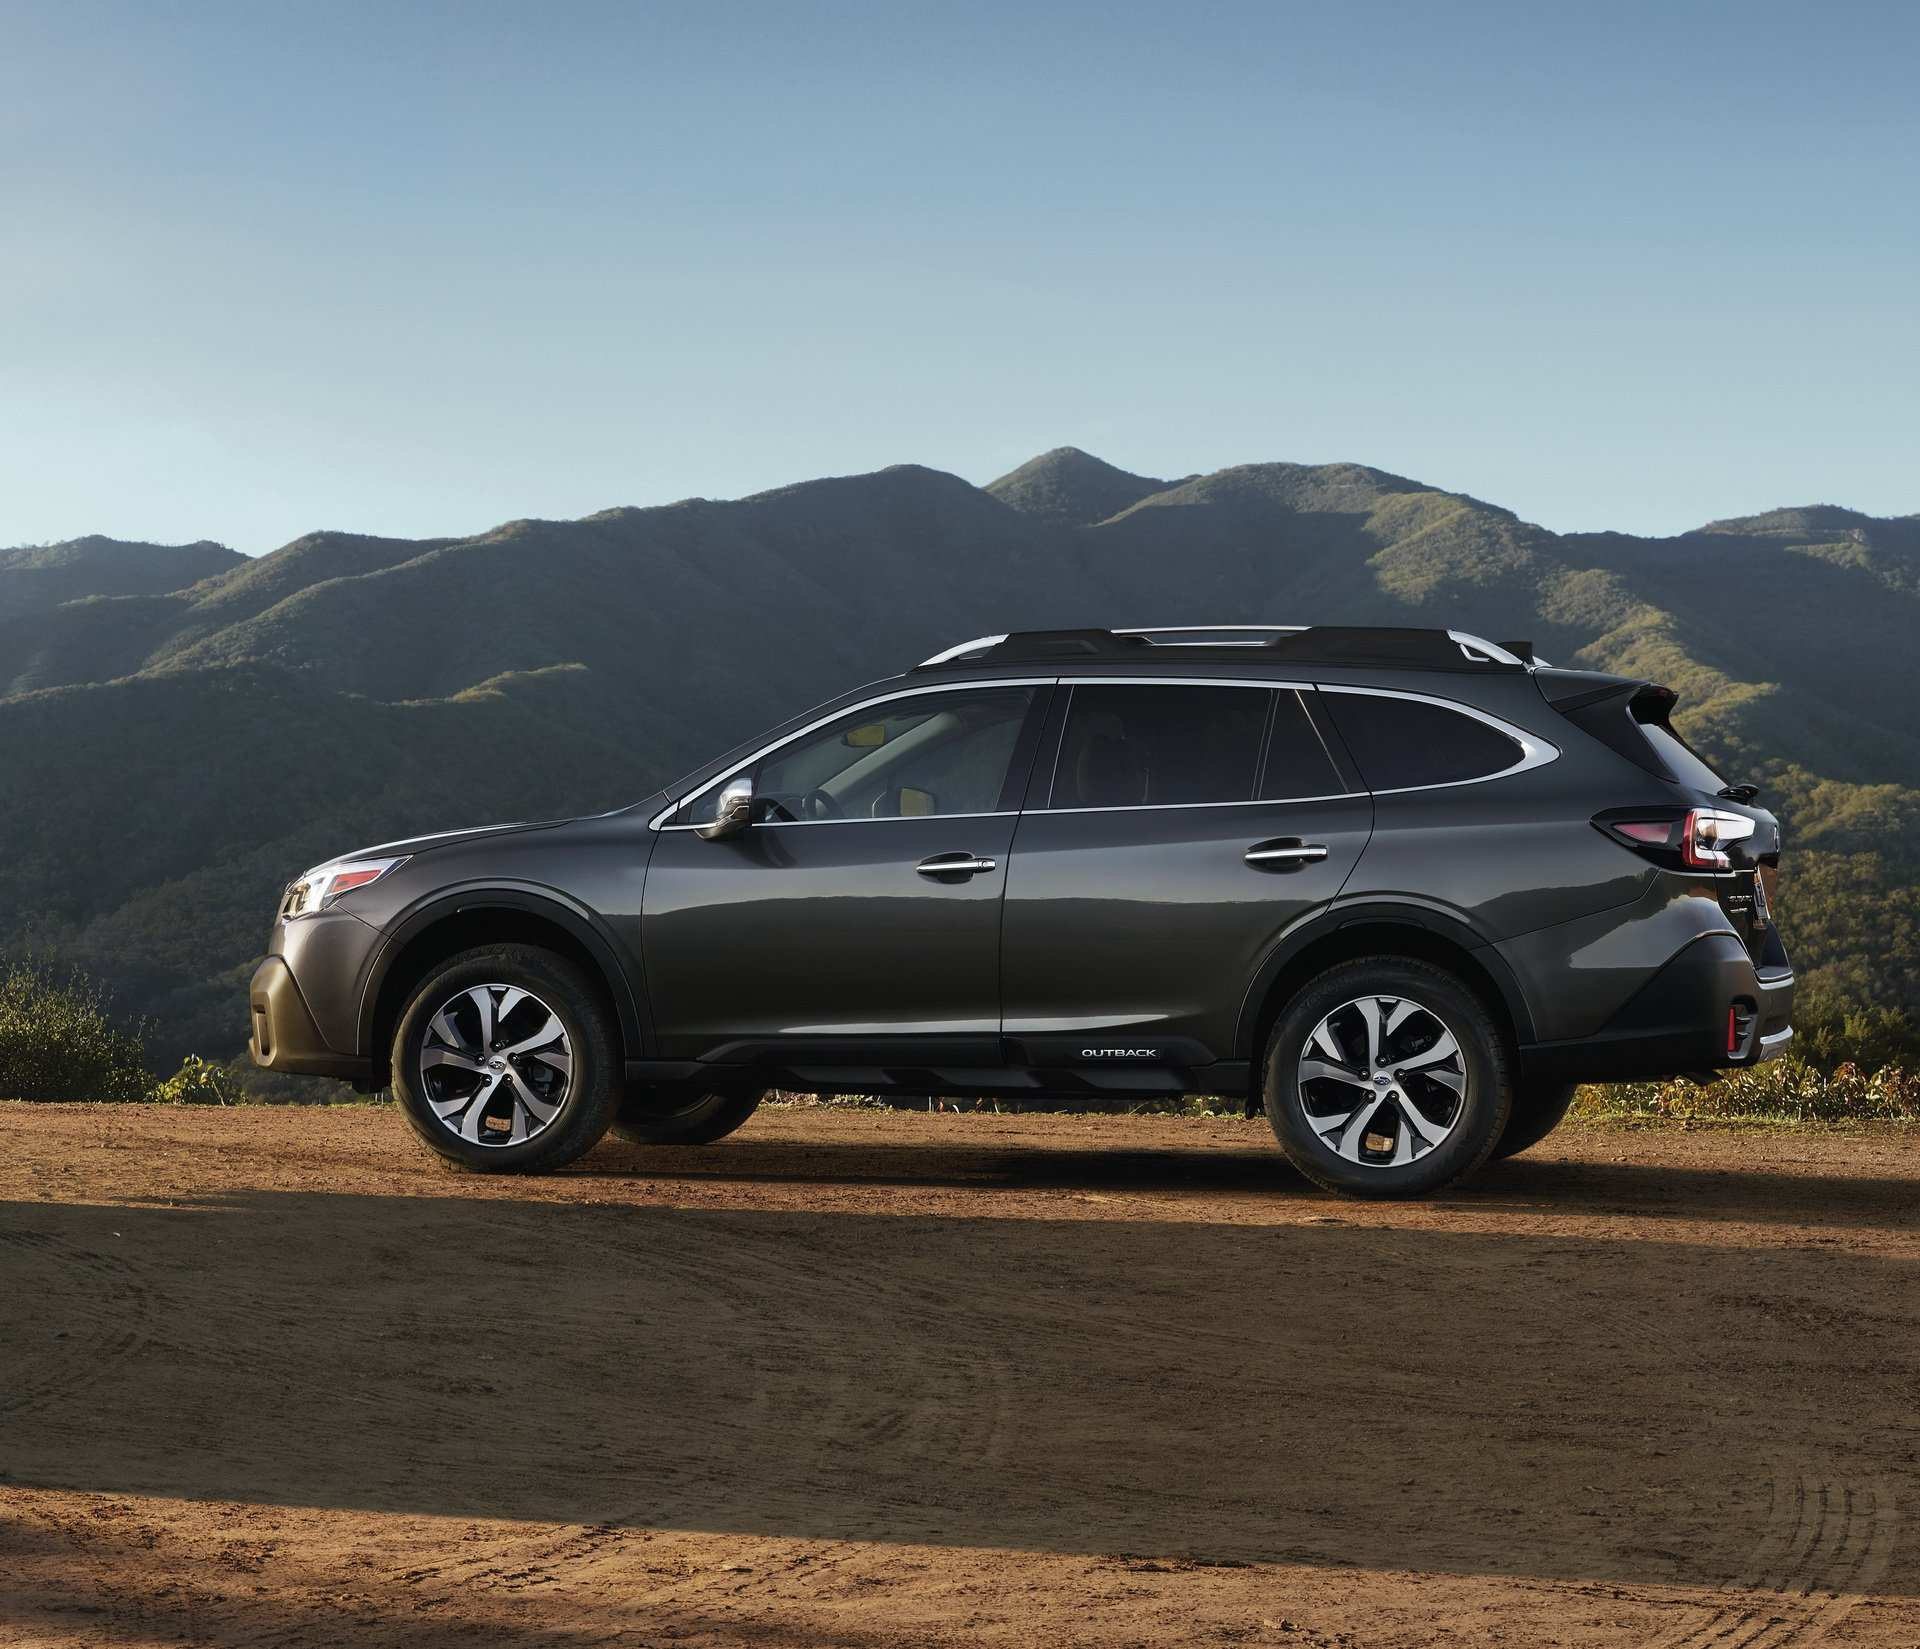 13 Best 2020 Subaru Outback Mpg Model